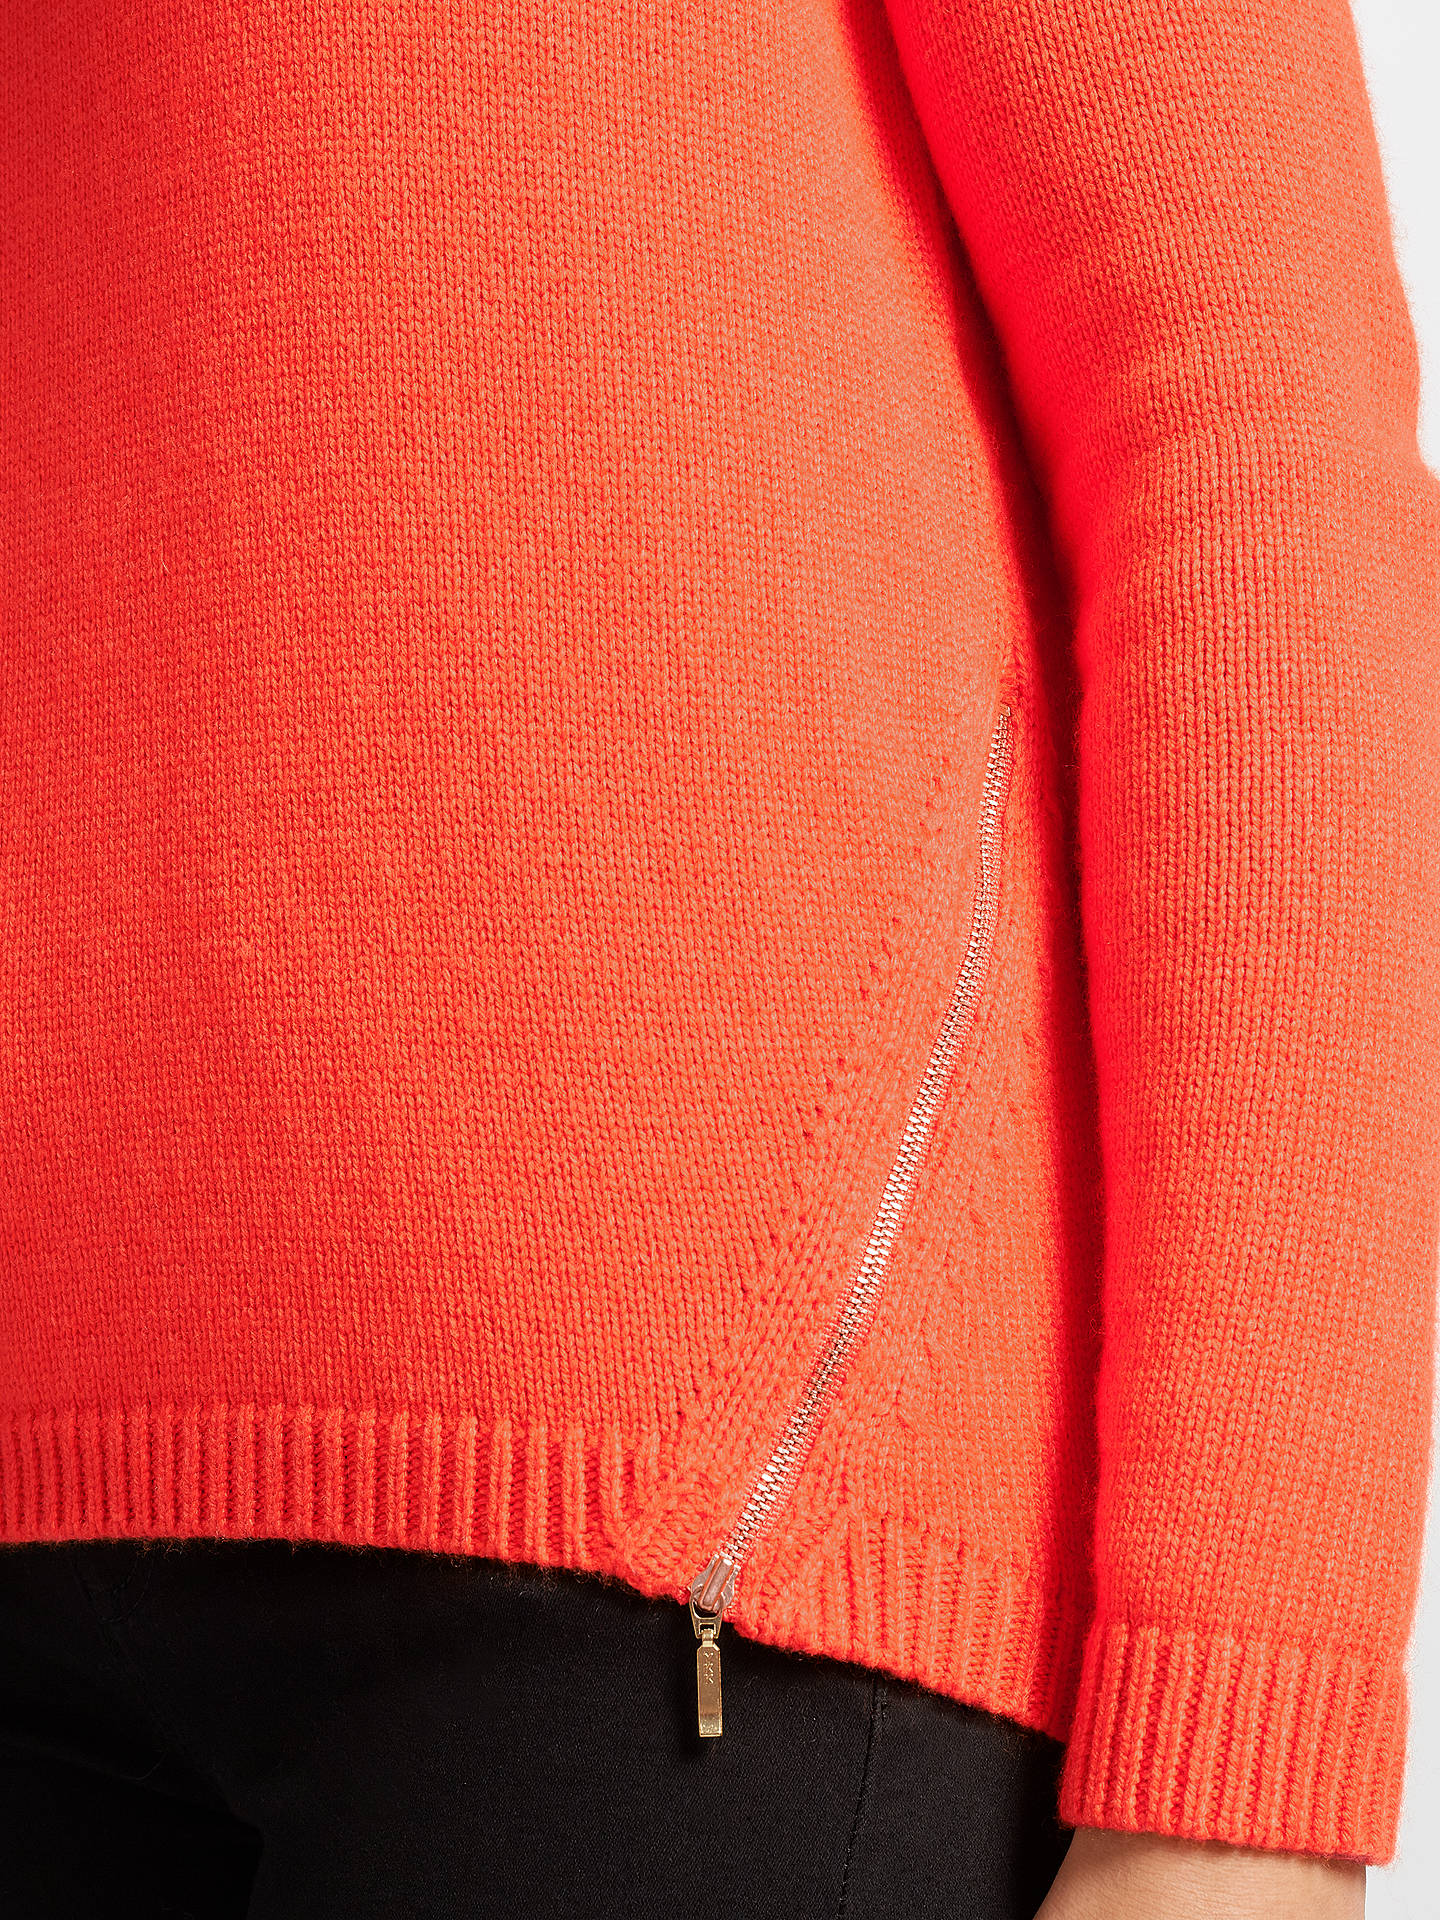 BuyCollection WEEKEND by John Lewis Zip Front Crew Jumper, Orange, 8 Online at johnlewis.com